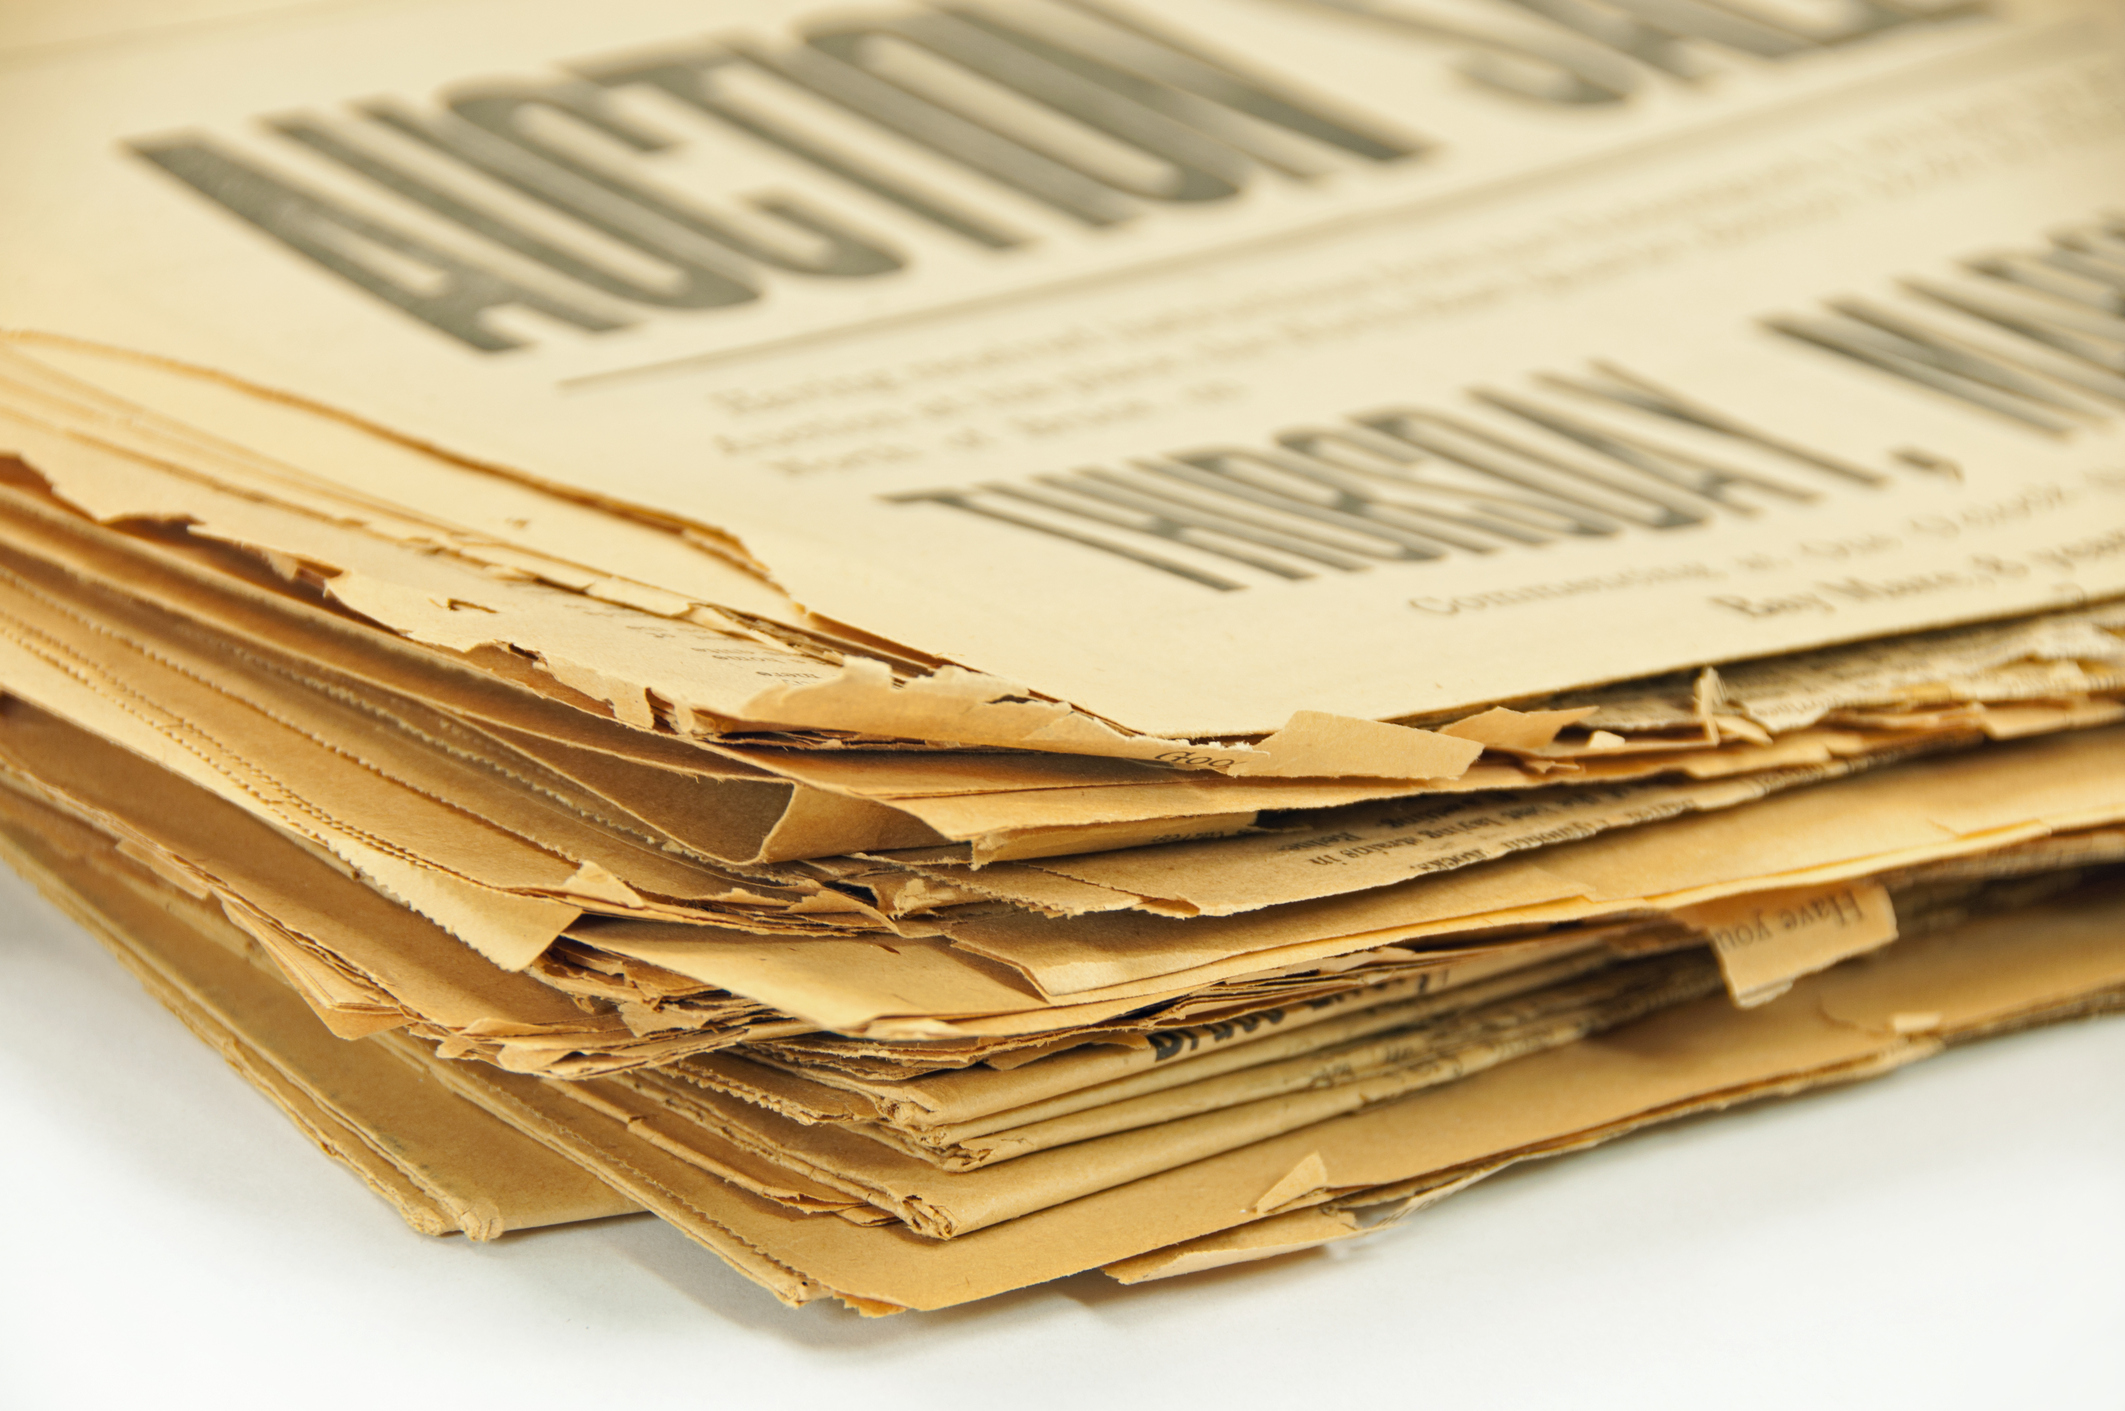 The oldest newspaper in South America was founded in Lima in 1825.